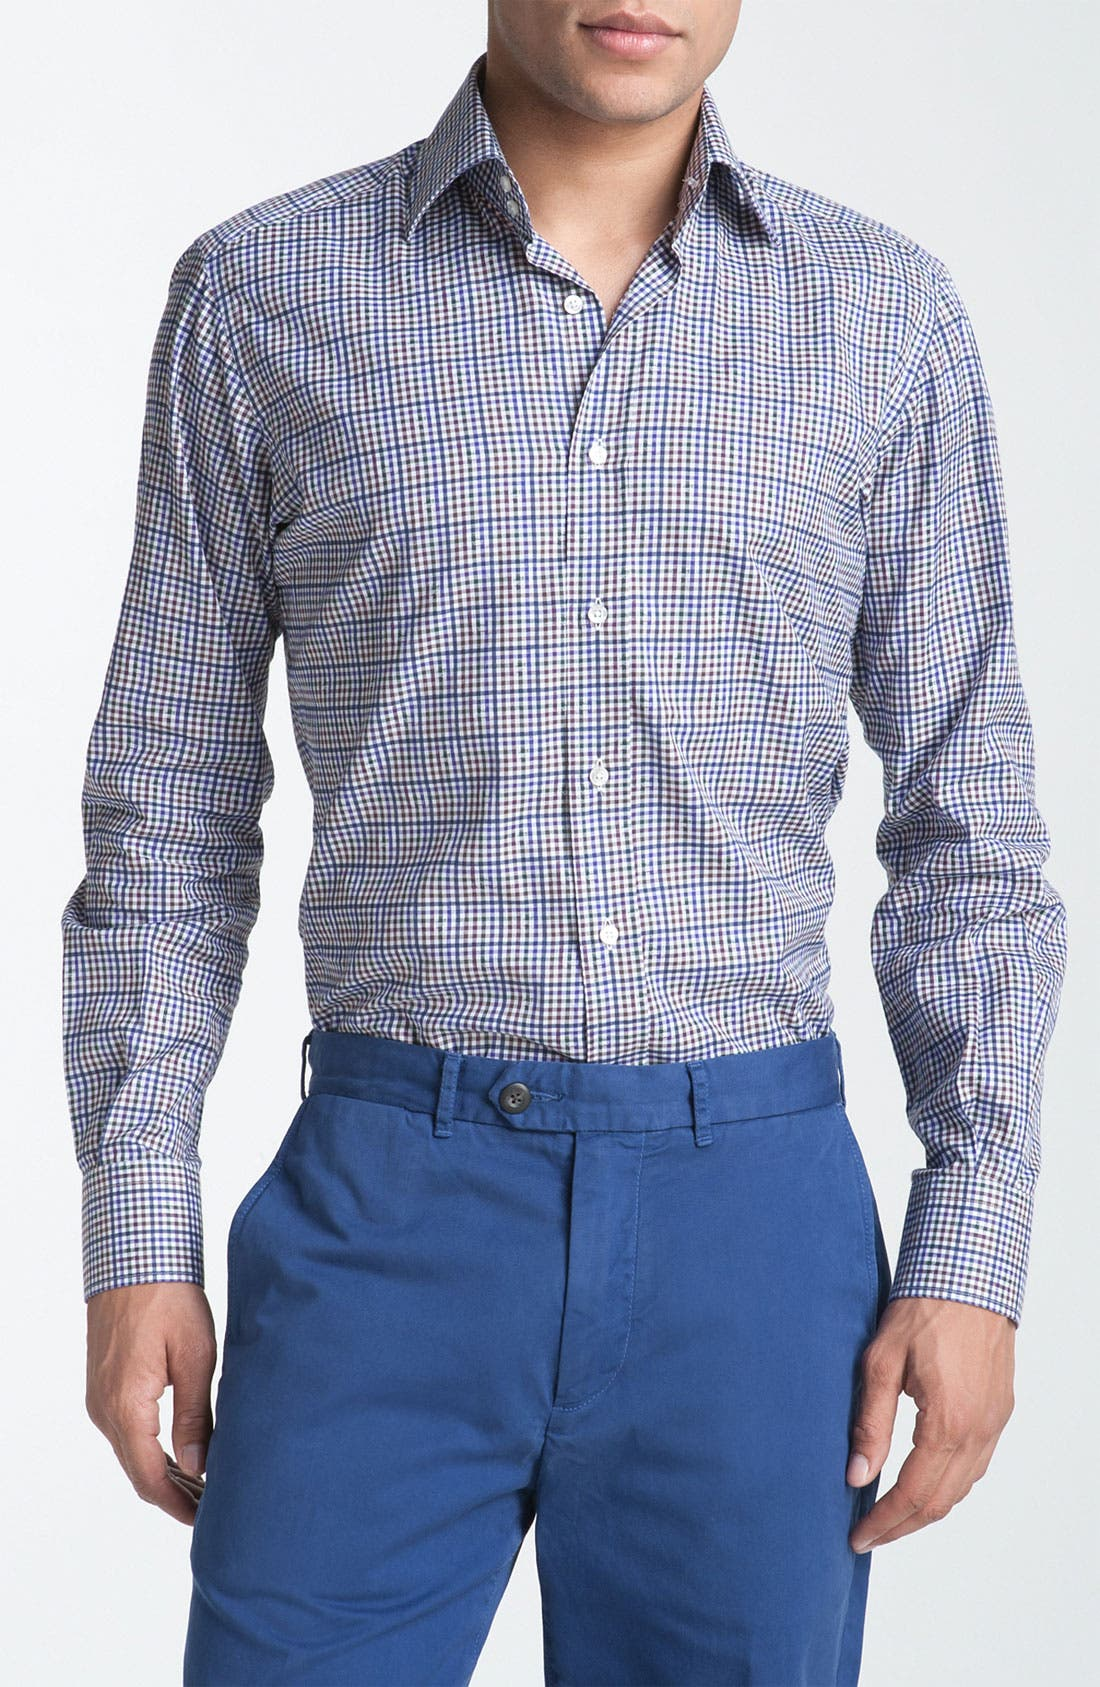 Alternate Image 1 Selected - Etro Plaid Woven Dress Shirt